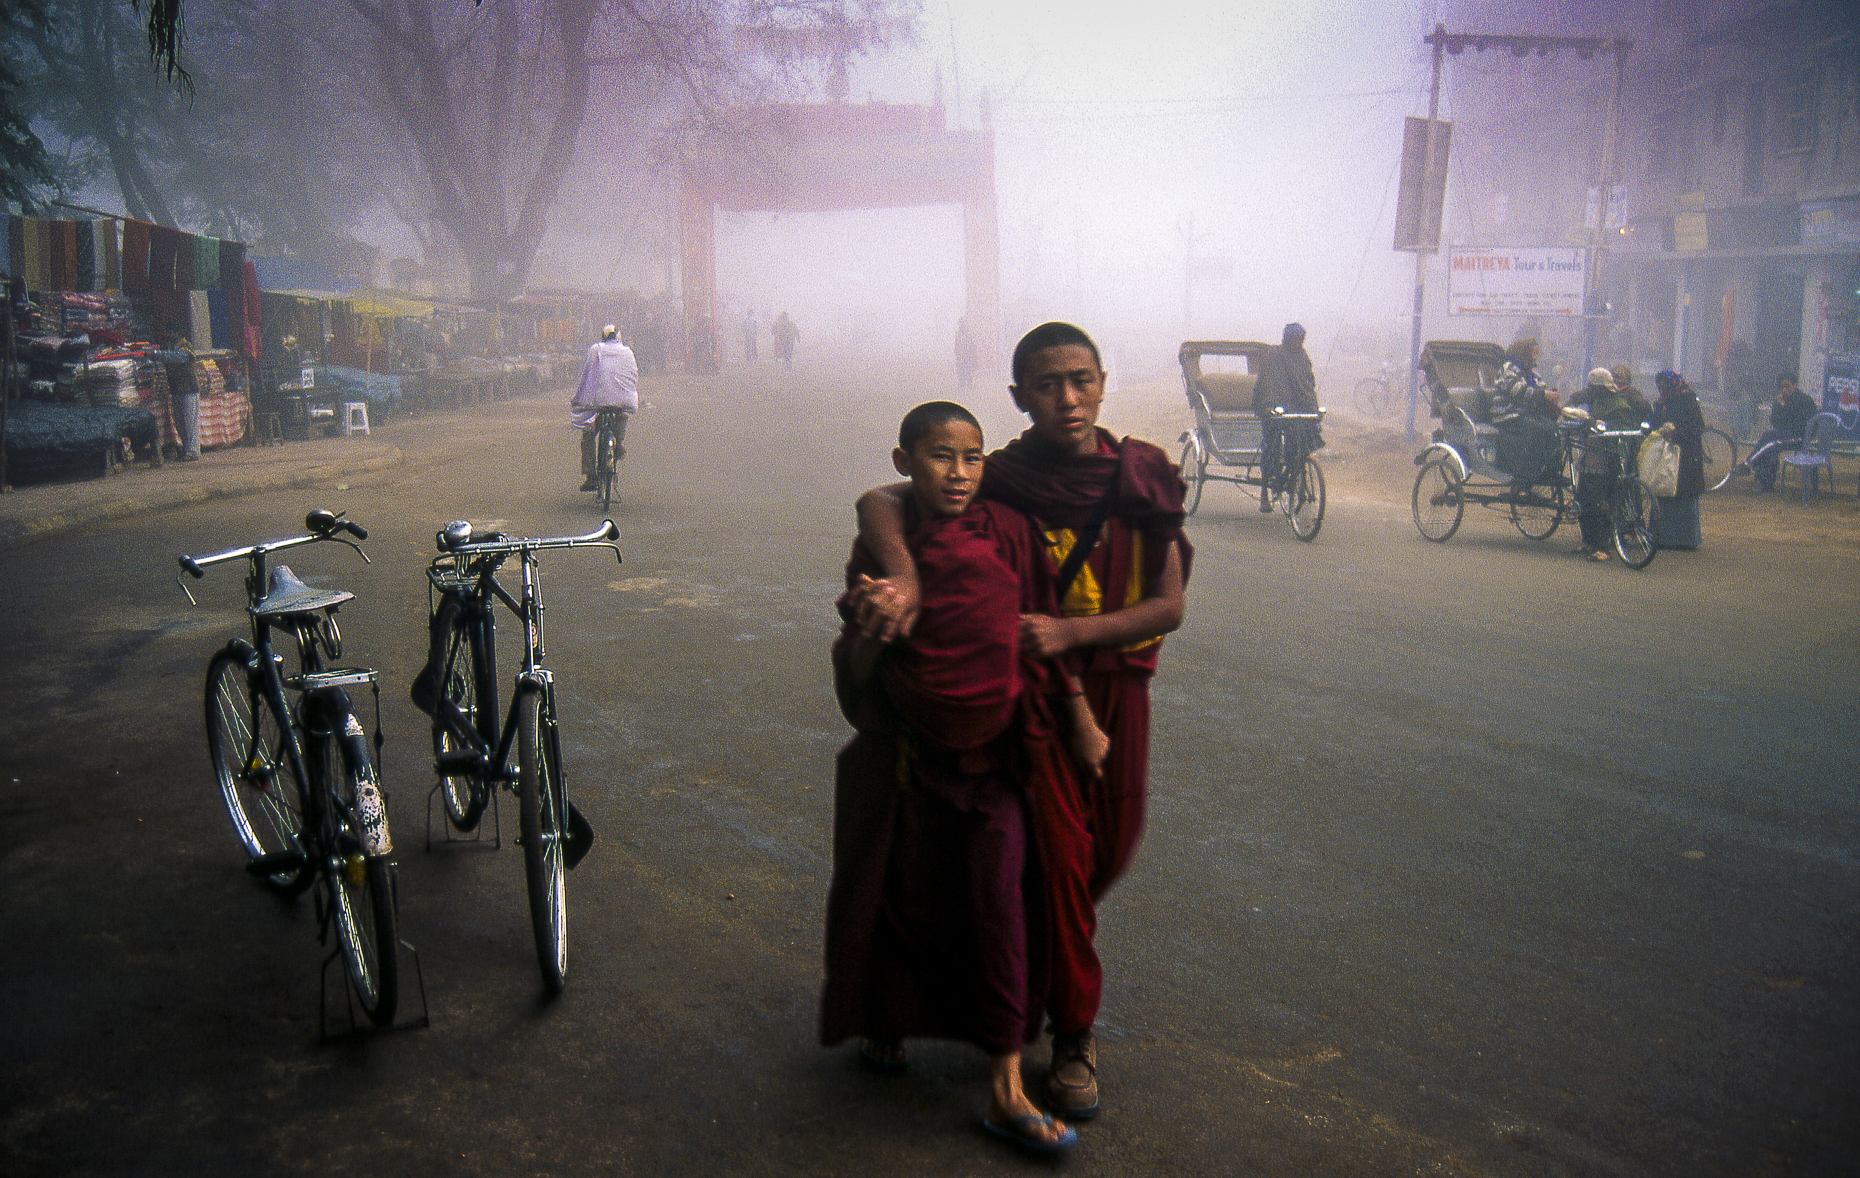 Buddhist monks at dawn.